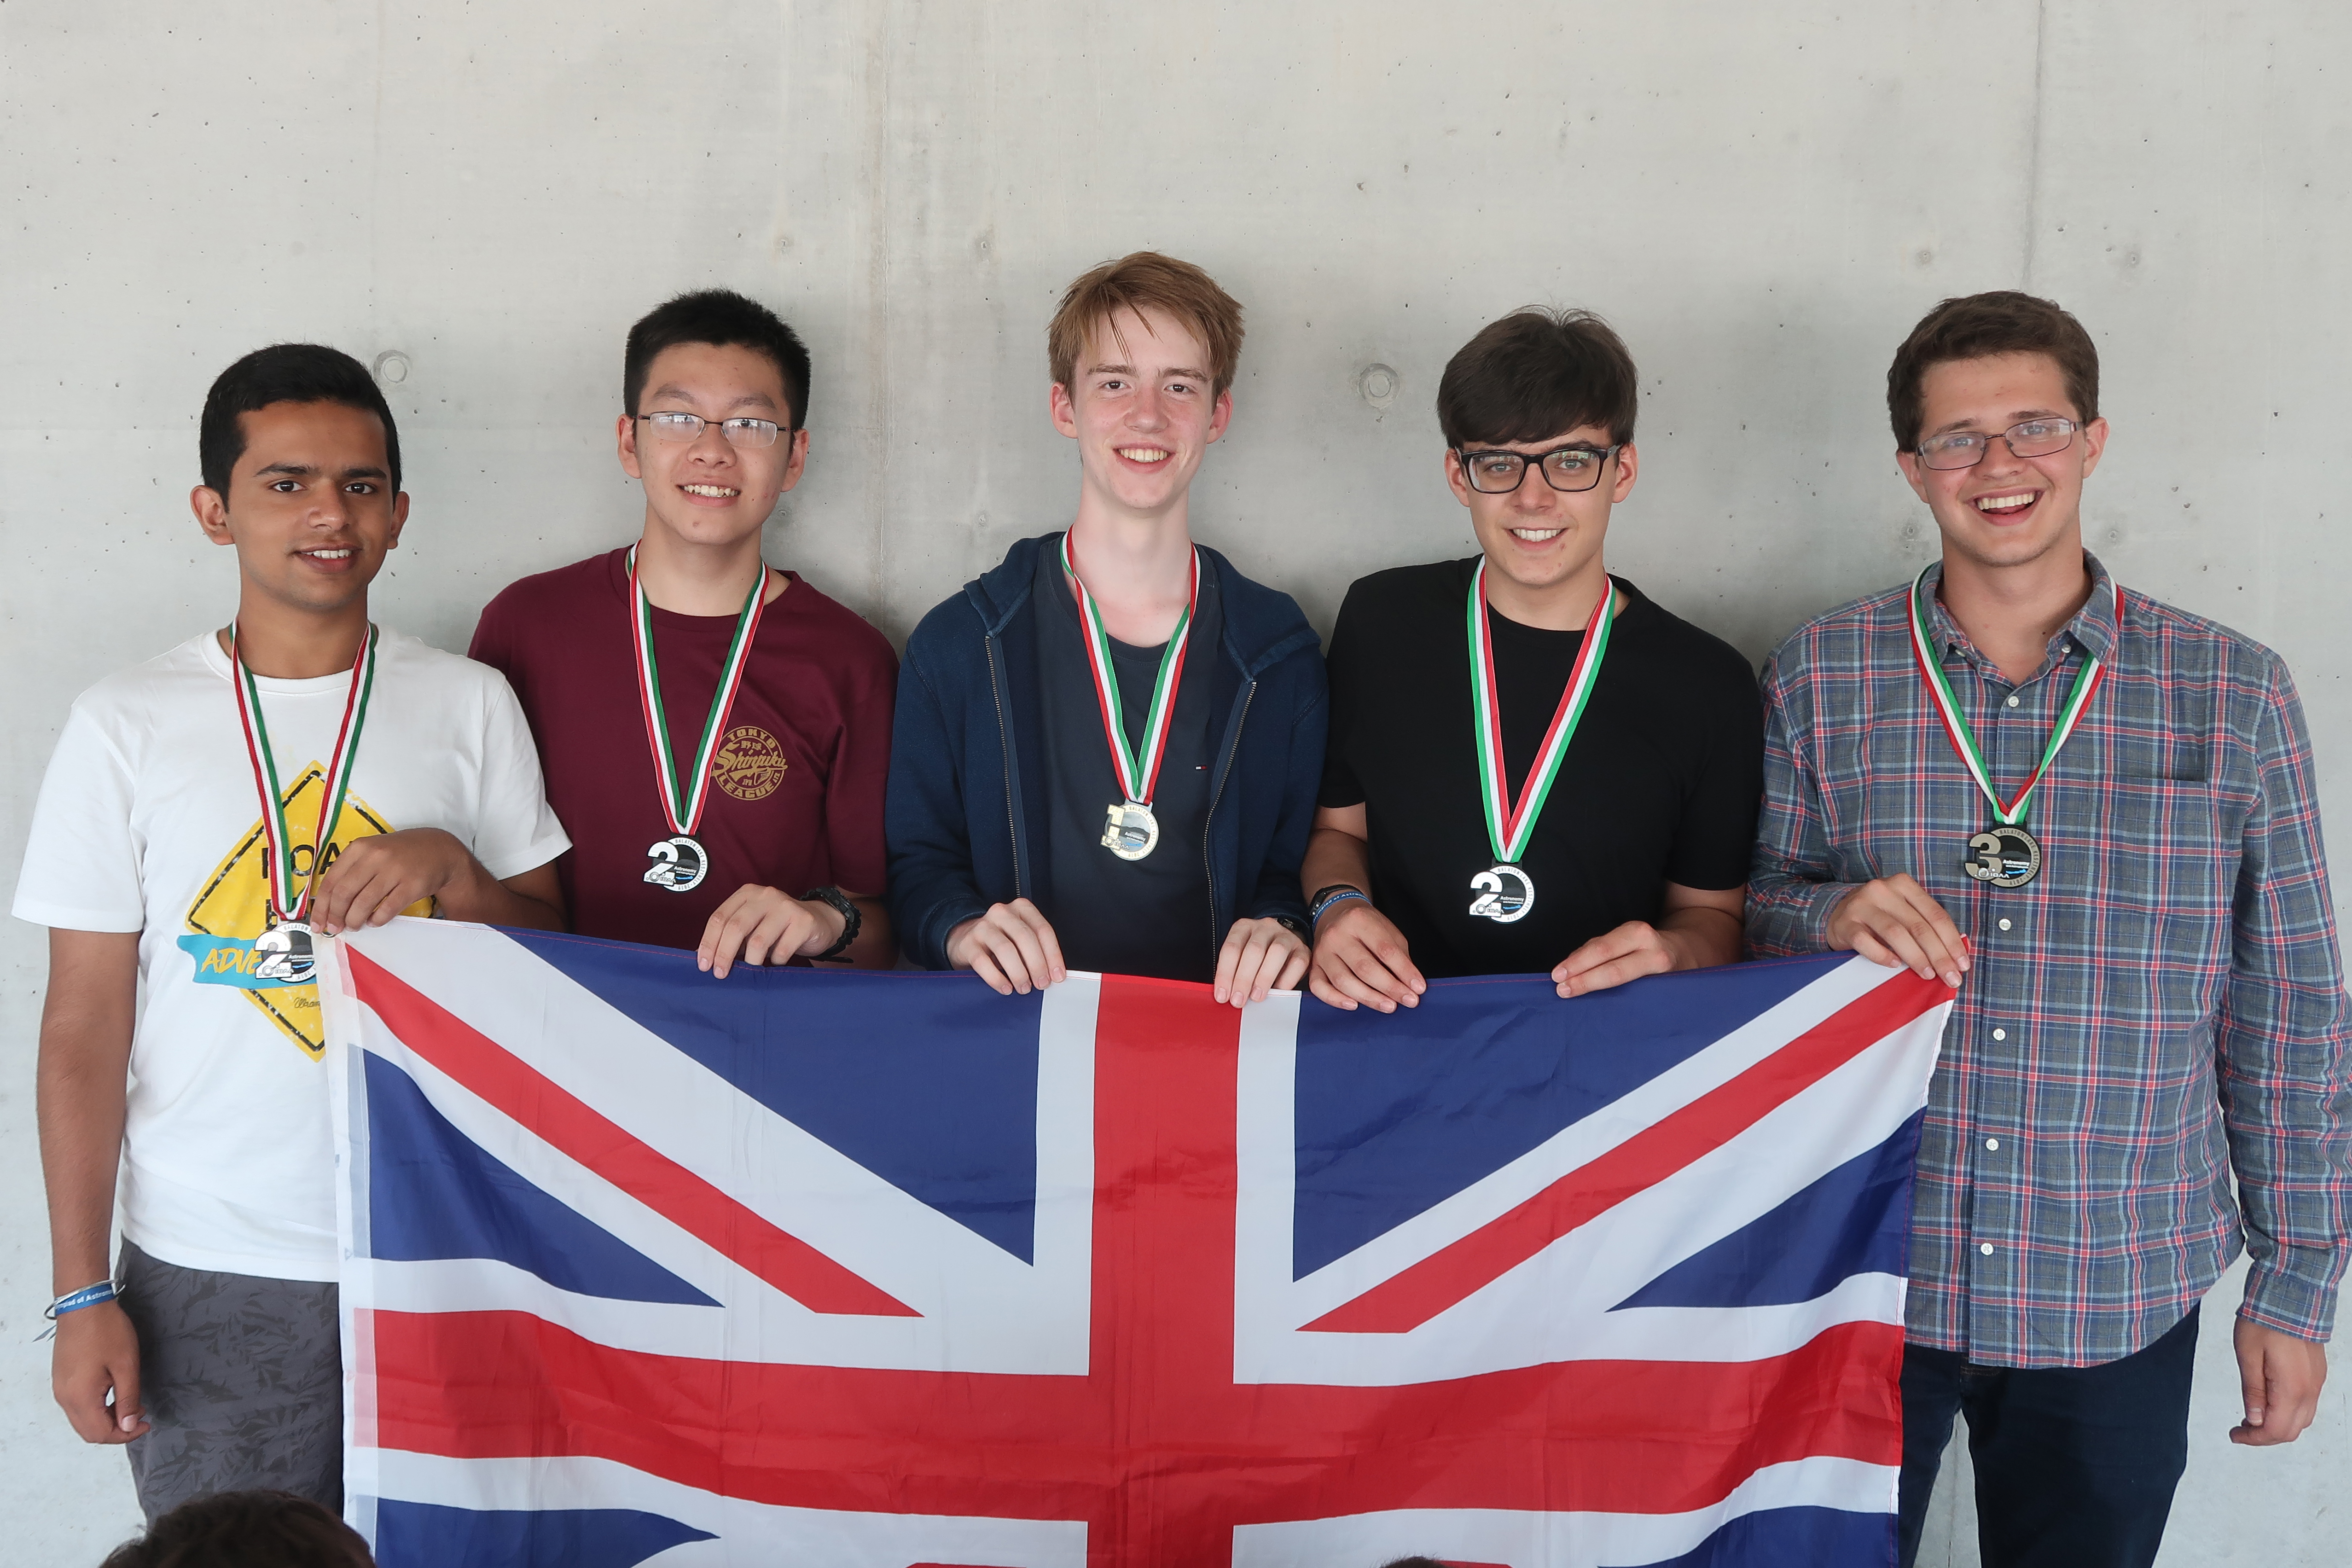 UK team at the International Olympiad on Astronomy and Astrophysics in Hungary, August 2019, led by Associate Fellow Charles Barclay